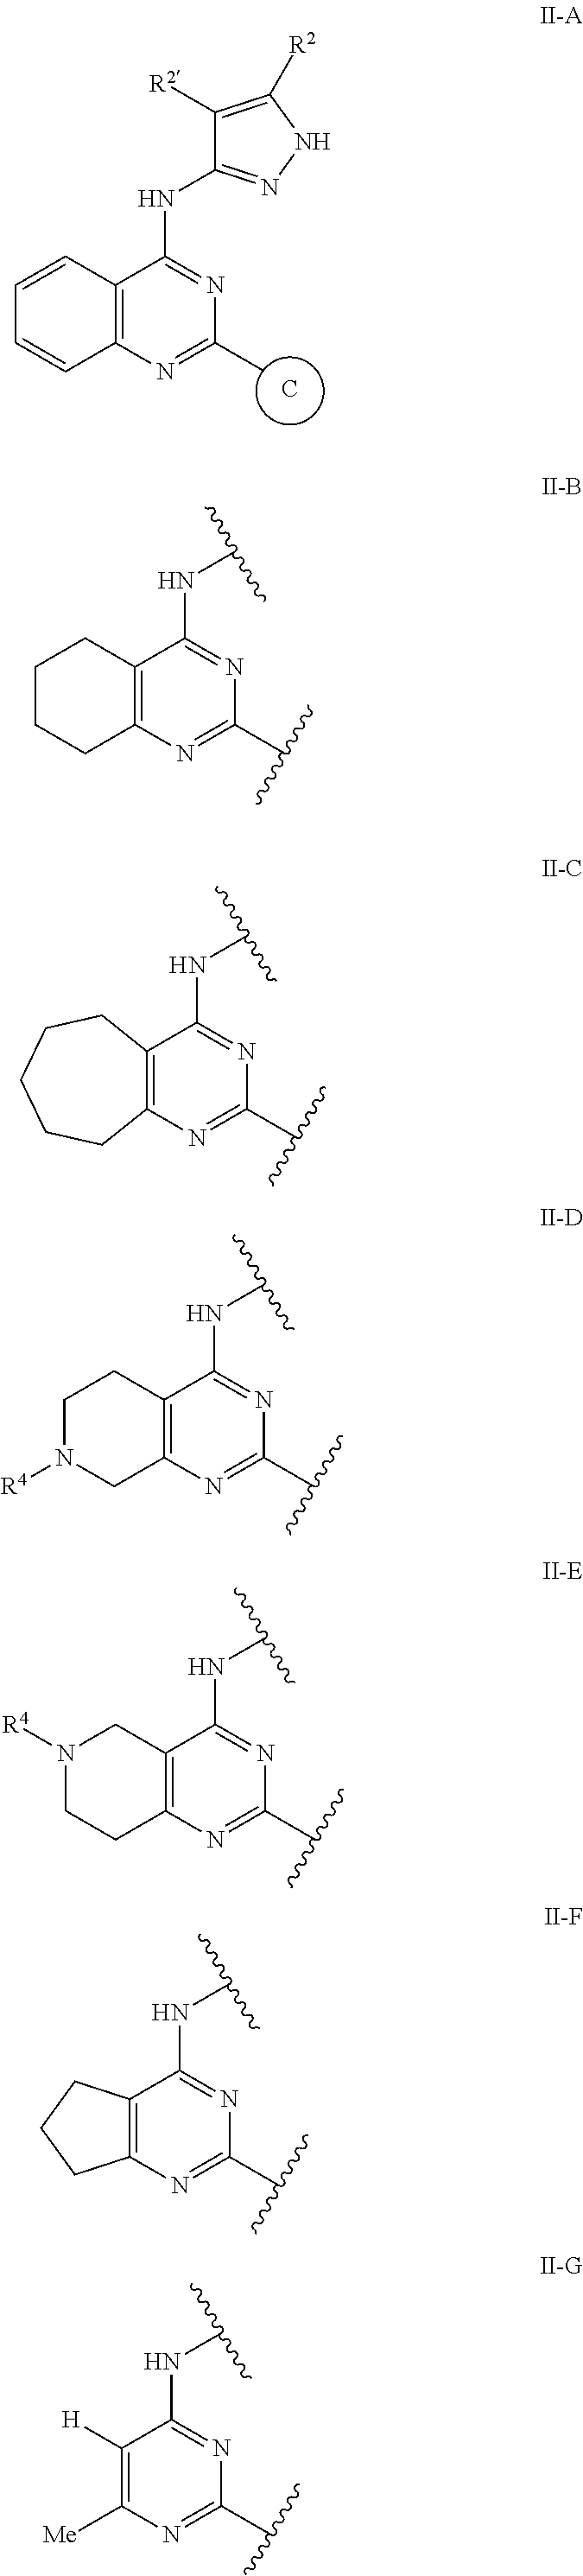 Us8633210b2 Triazole Compounds Useful As Protein Kinase Inhibitors Wiring Diagram Bolens 1476 Figure Us08633210 20140121 C00012